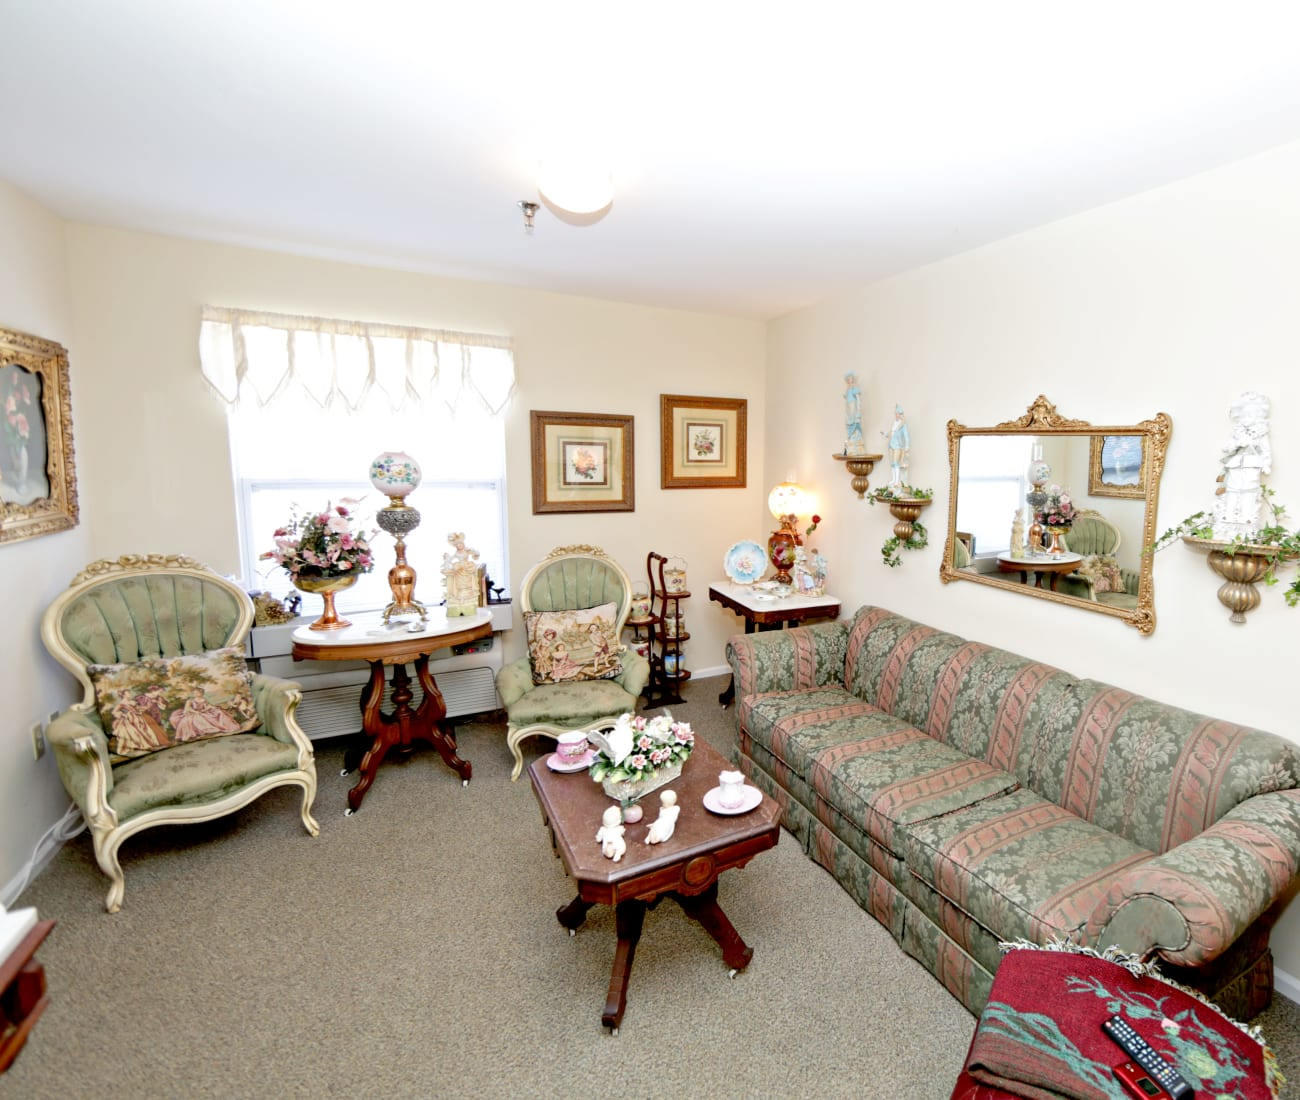 Resident living room with carpet and natural light at Providence Assisted Living in Senatobia, Mississippi